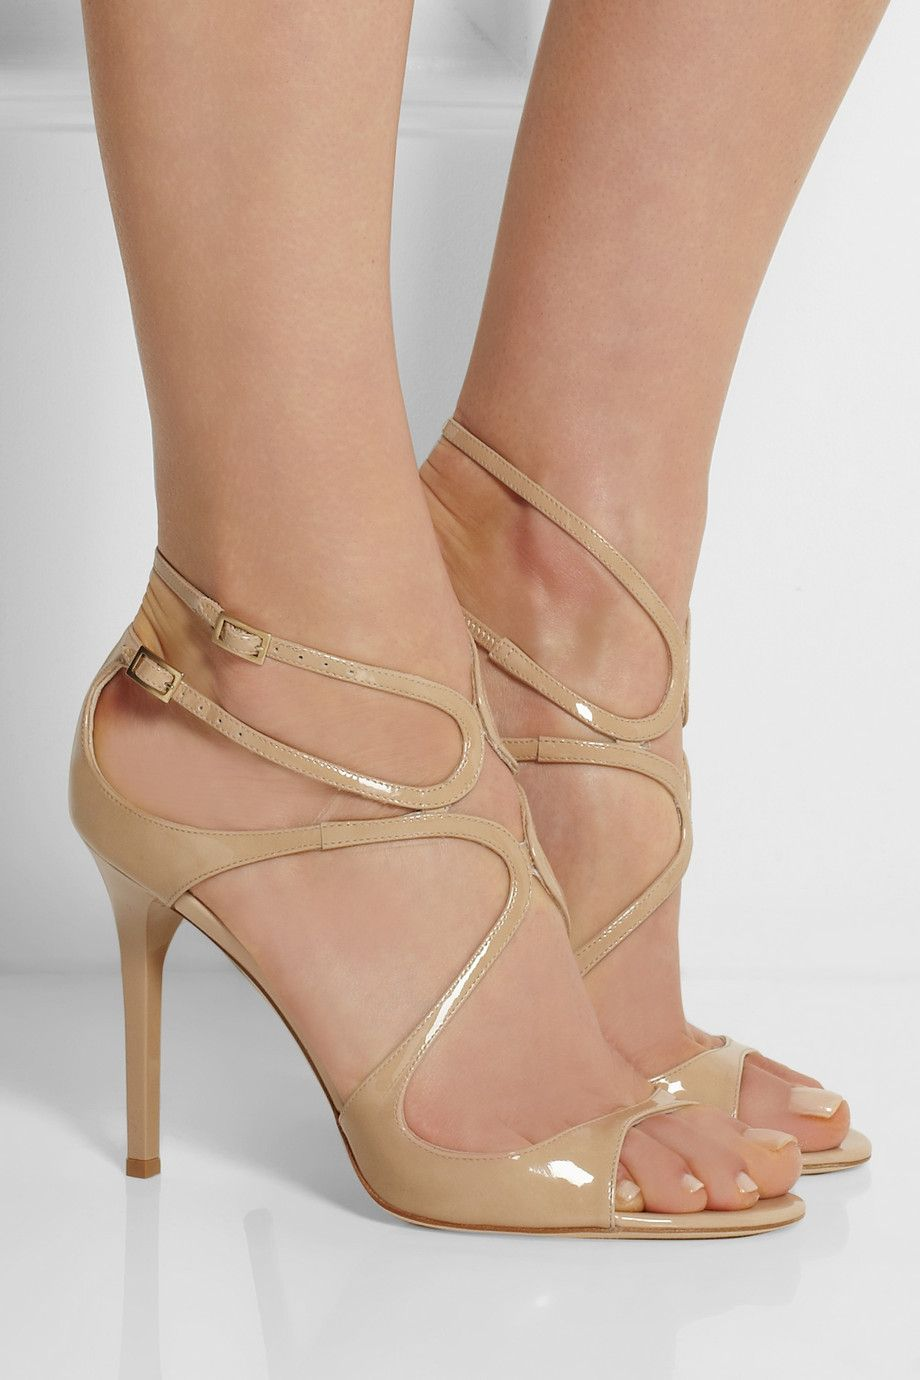 Jimmy choo Lang 100 Patent Heels in Neutrals. bug70q